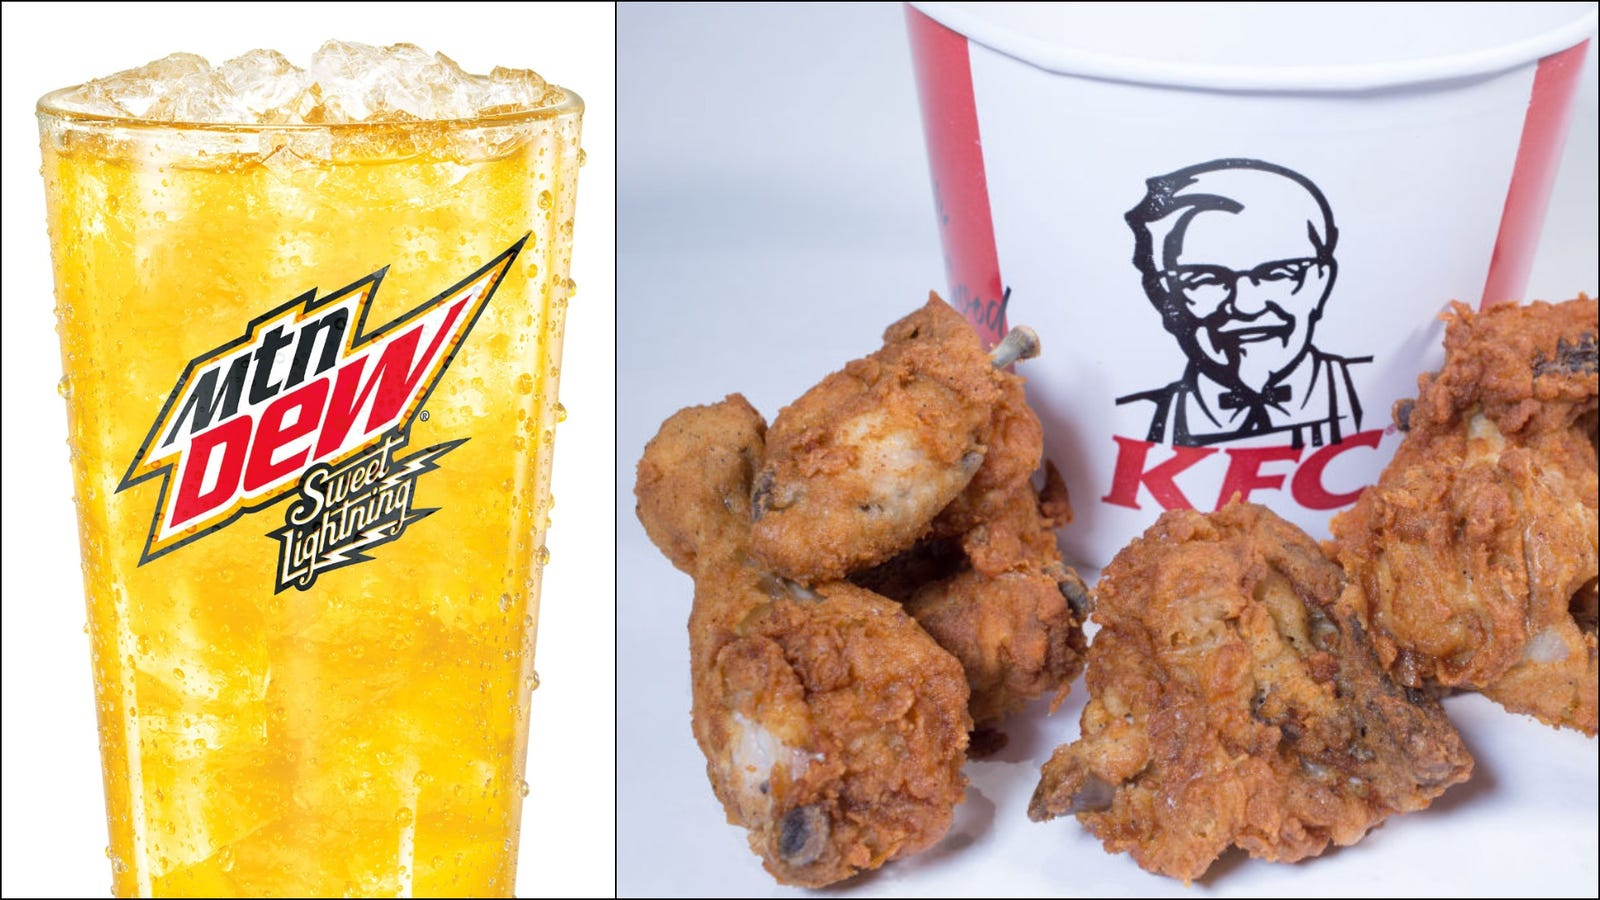 Mountain Dew created a soda designed to pair with KFC's Original Recipe chicken